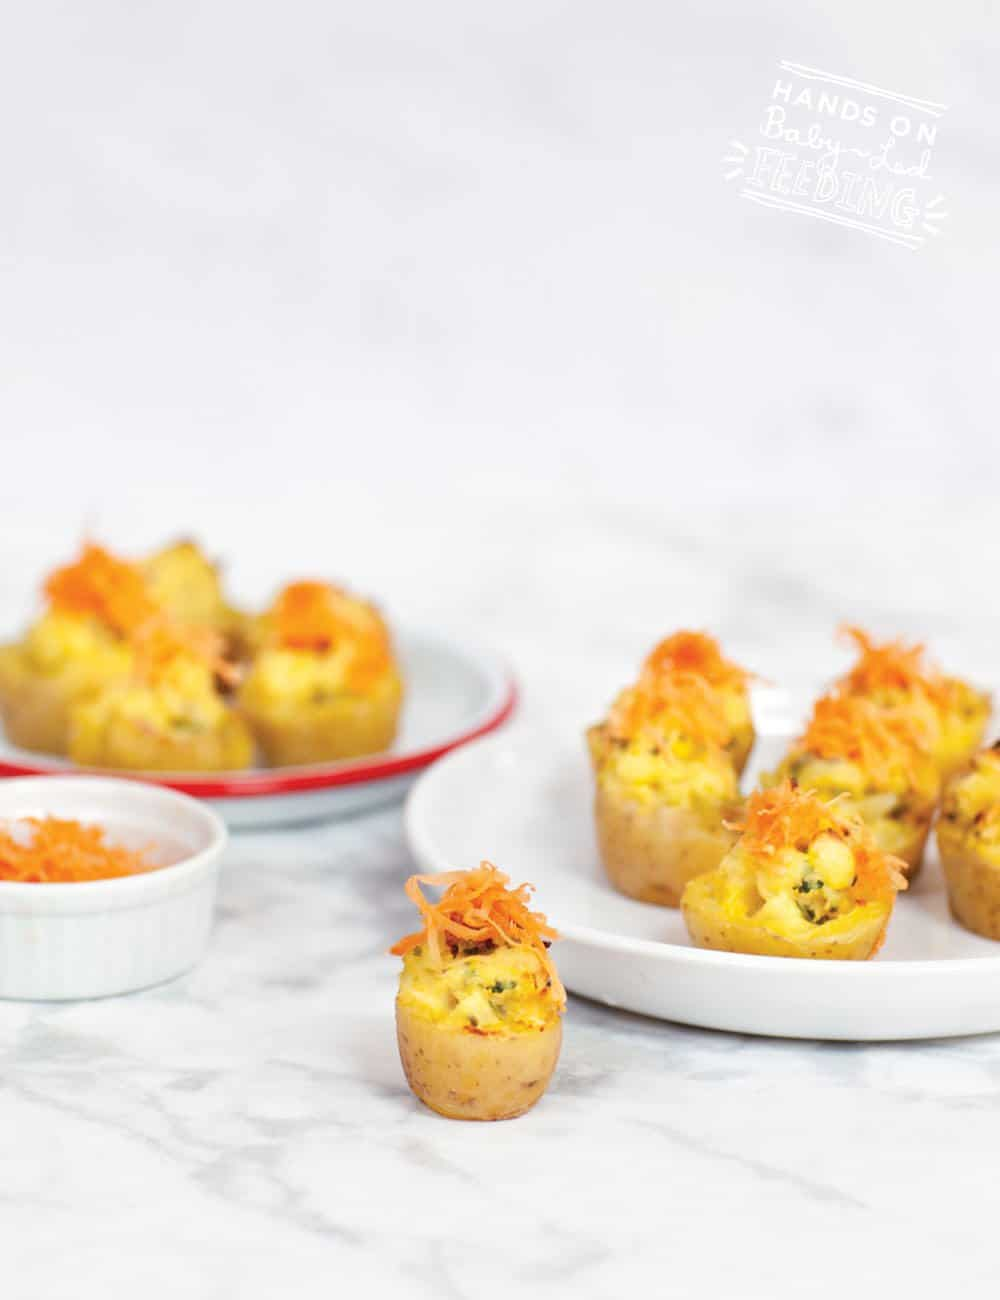 The cutest recipe for colcannon you've ever made! Mini colcannon bites made with baby potatoes and traditional Irish colcannon ingredients but with a healthy twist. Finger foods make the best St. Patrick's Day recipe! This recipe is created by an Irish mum living in Dublin. #irishrecipe #stpatricksdayrecipe #stpatricksday #colcannon #babyledweaning #babyledfeeding #partyfood #appetizers